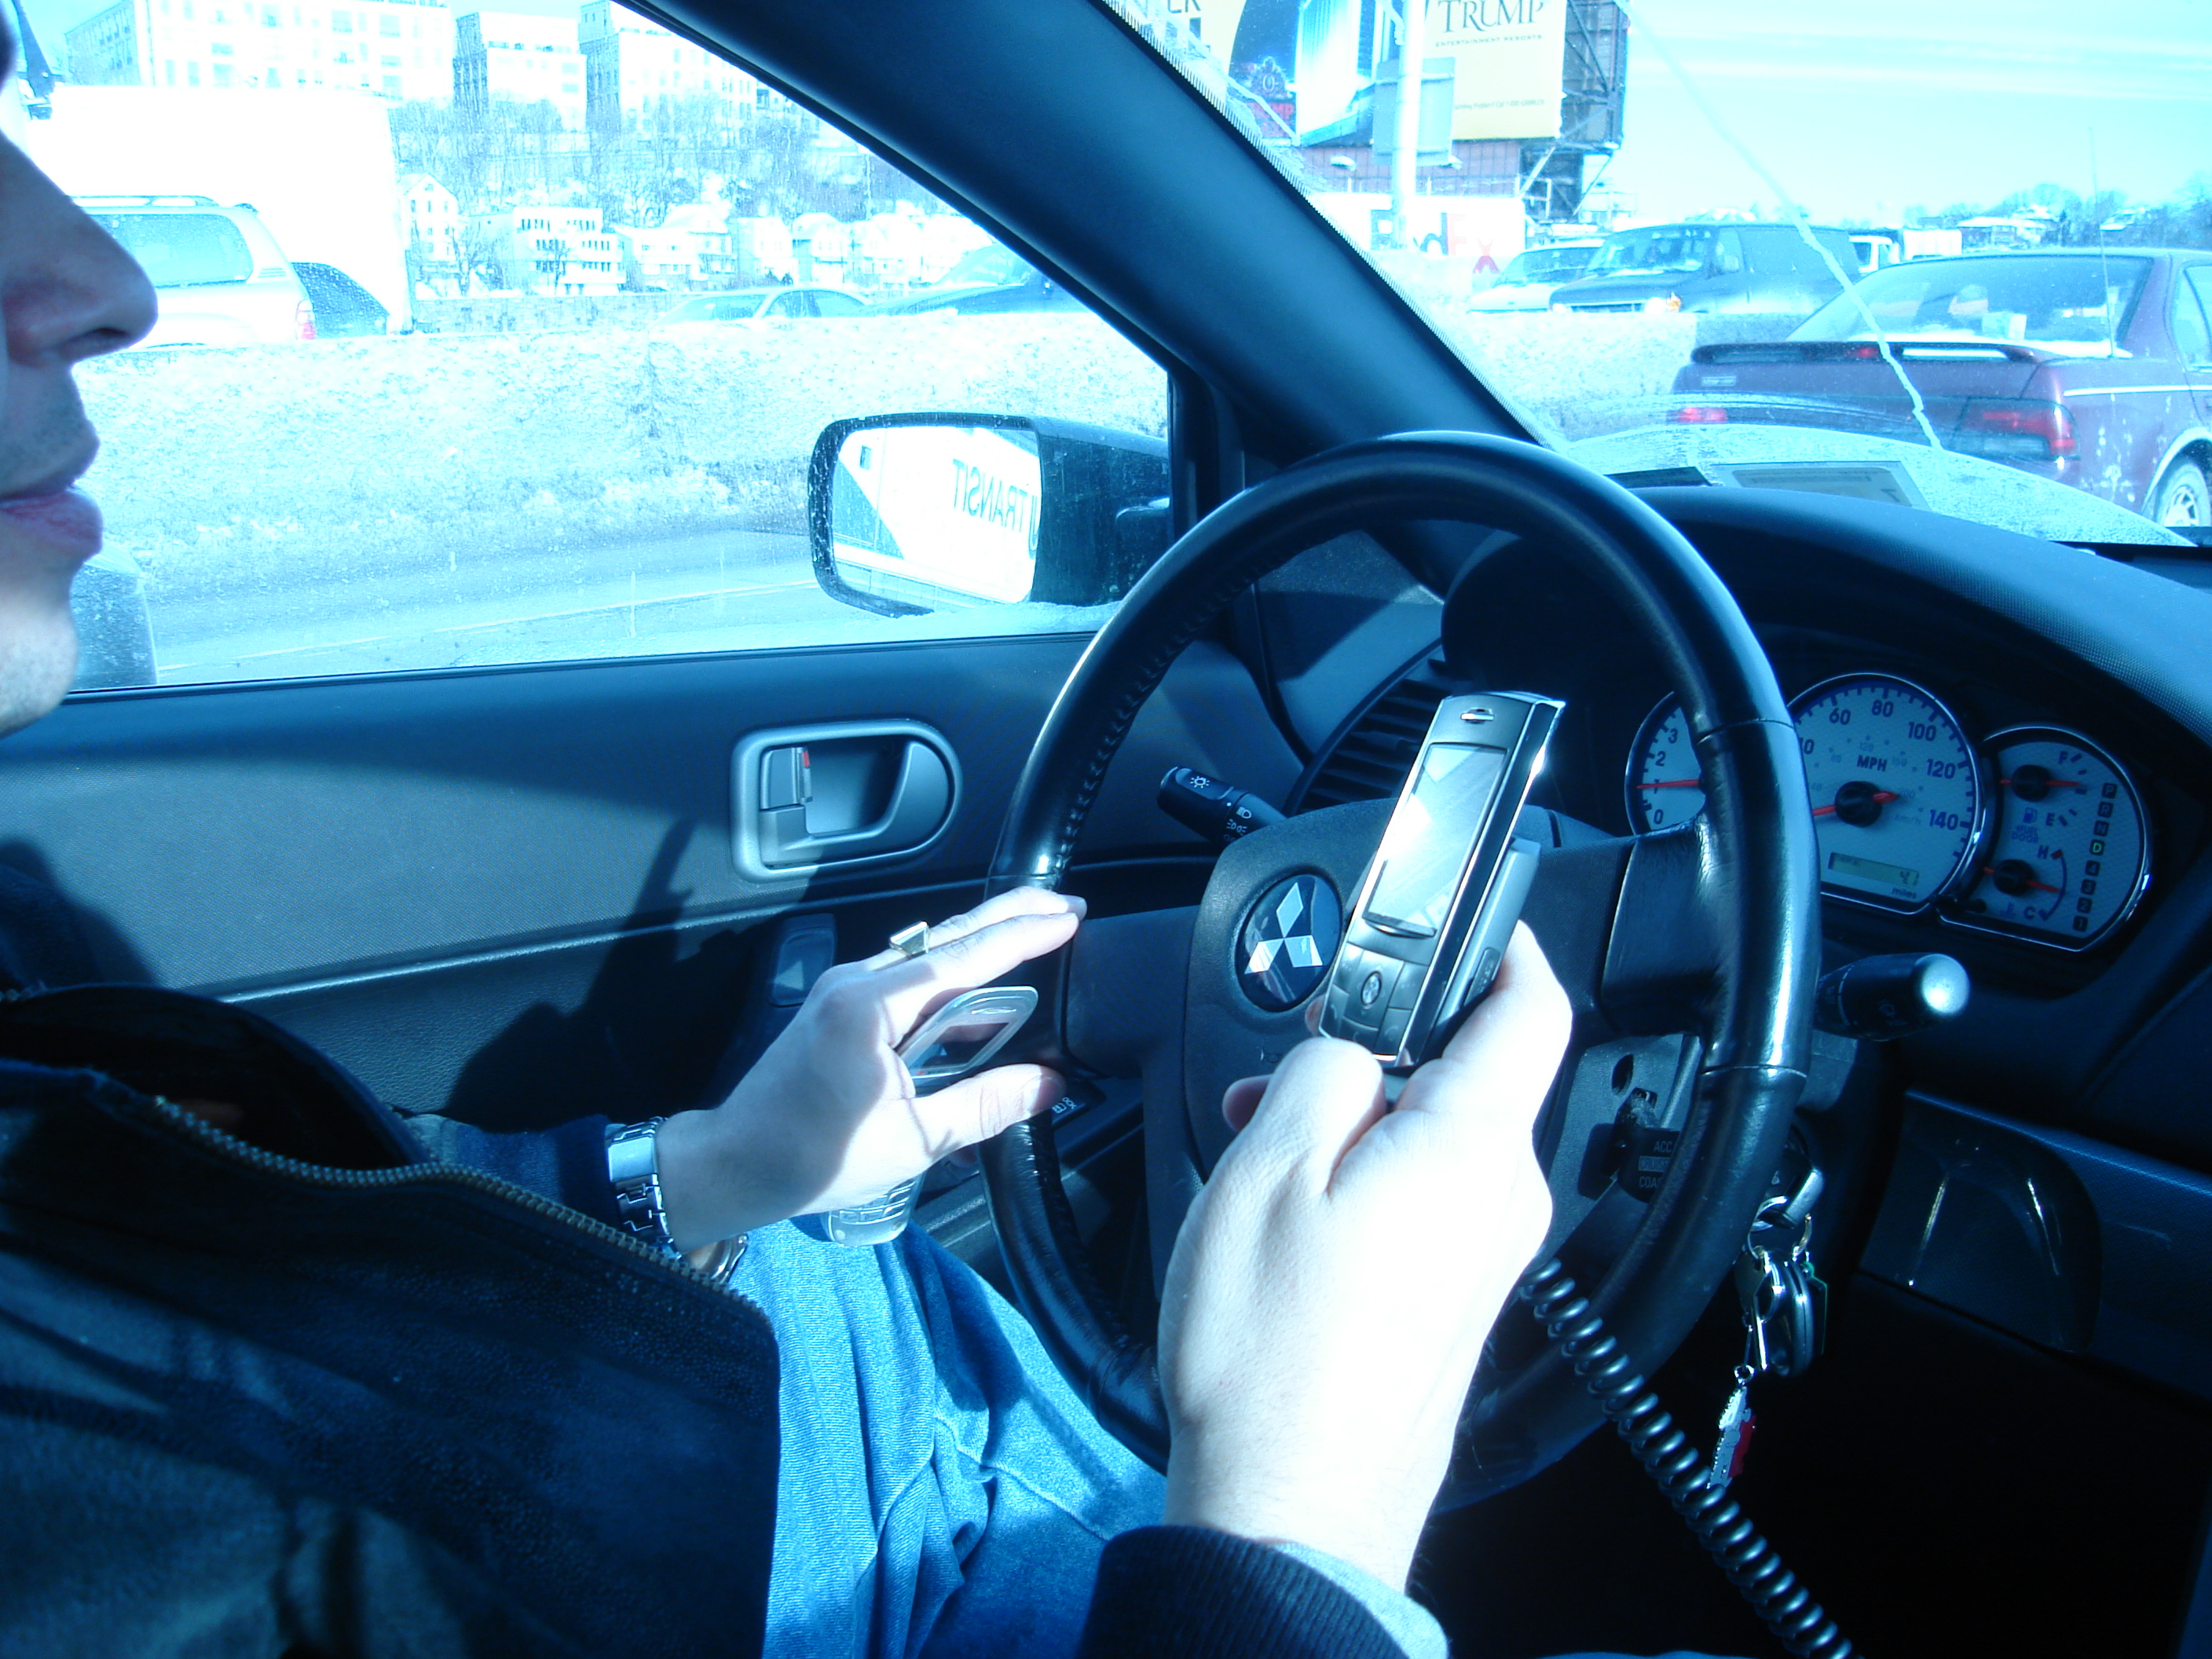 A New York City driver using two handheld mobile phones at once.